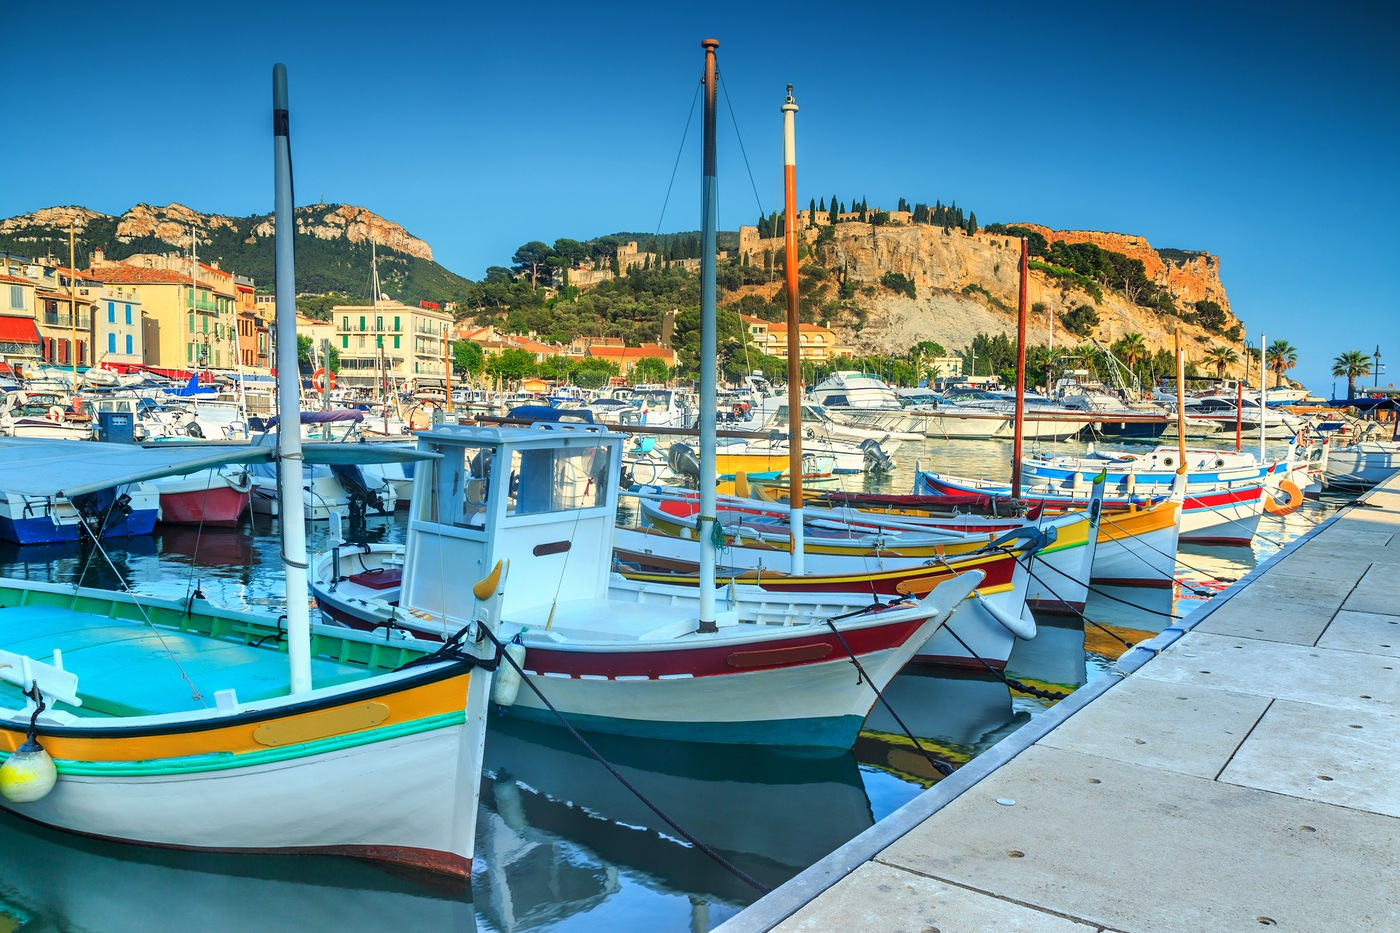 Best places to visit in the world the hidden gems edition for Cassis france hotels